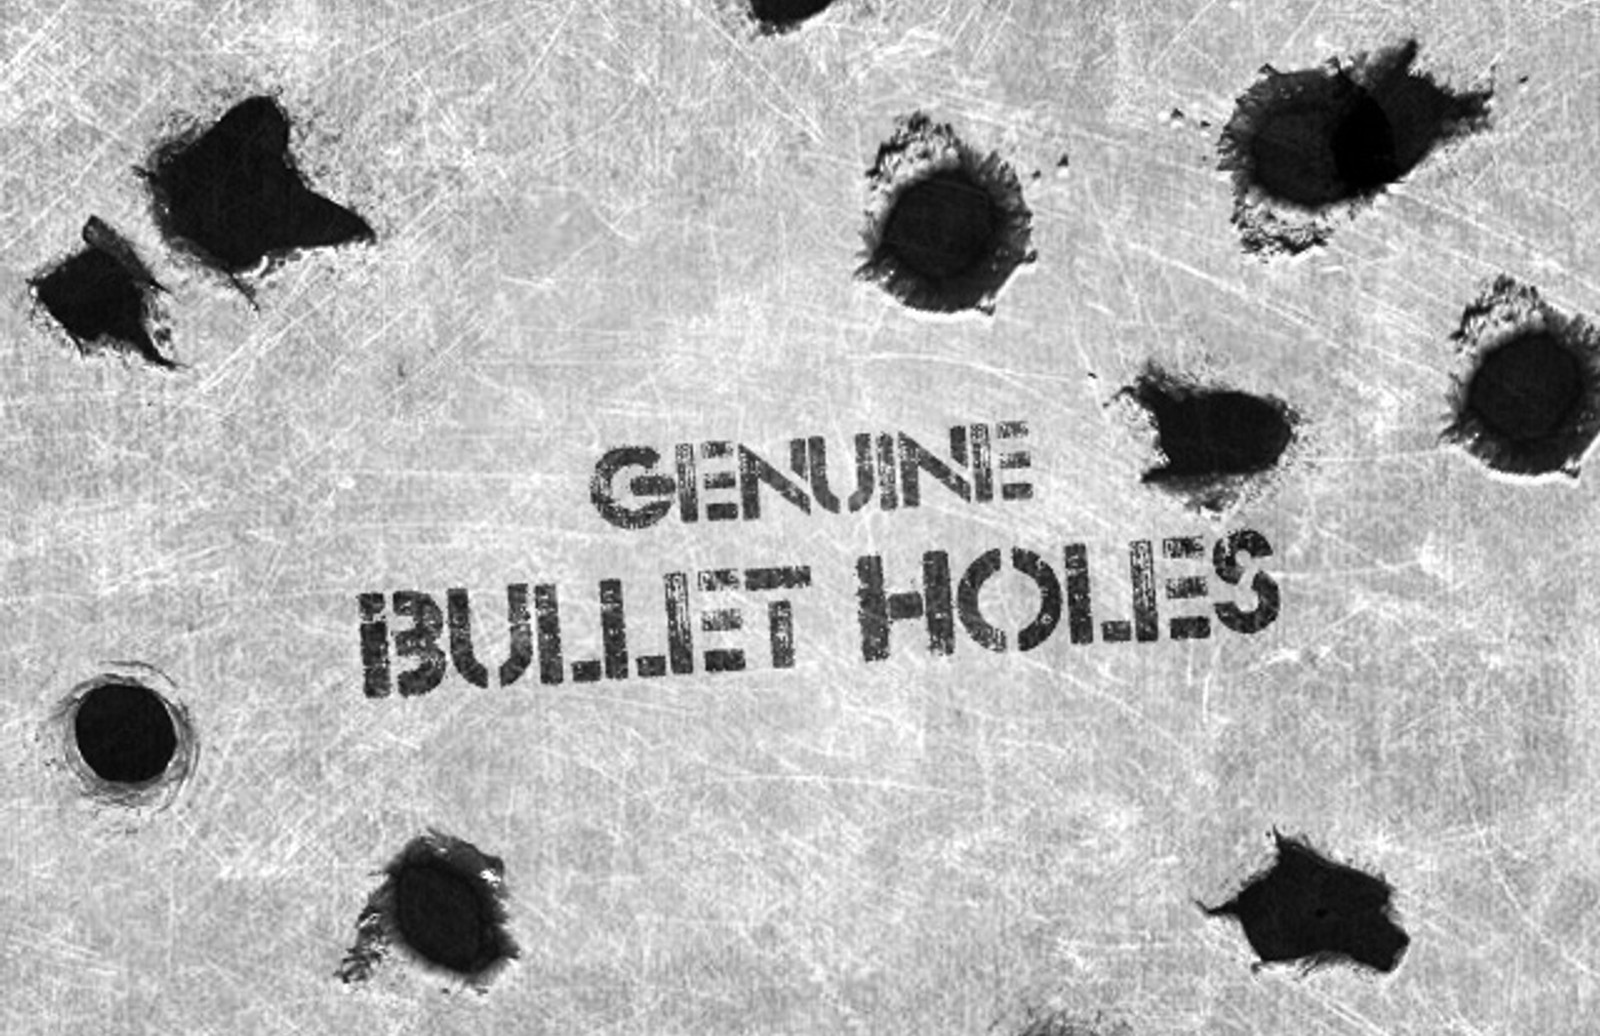 Genuine Bullet Hole Brushes Medialoot